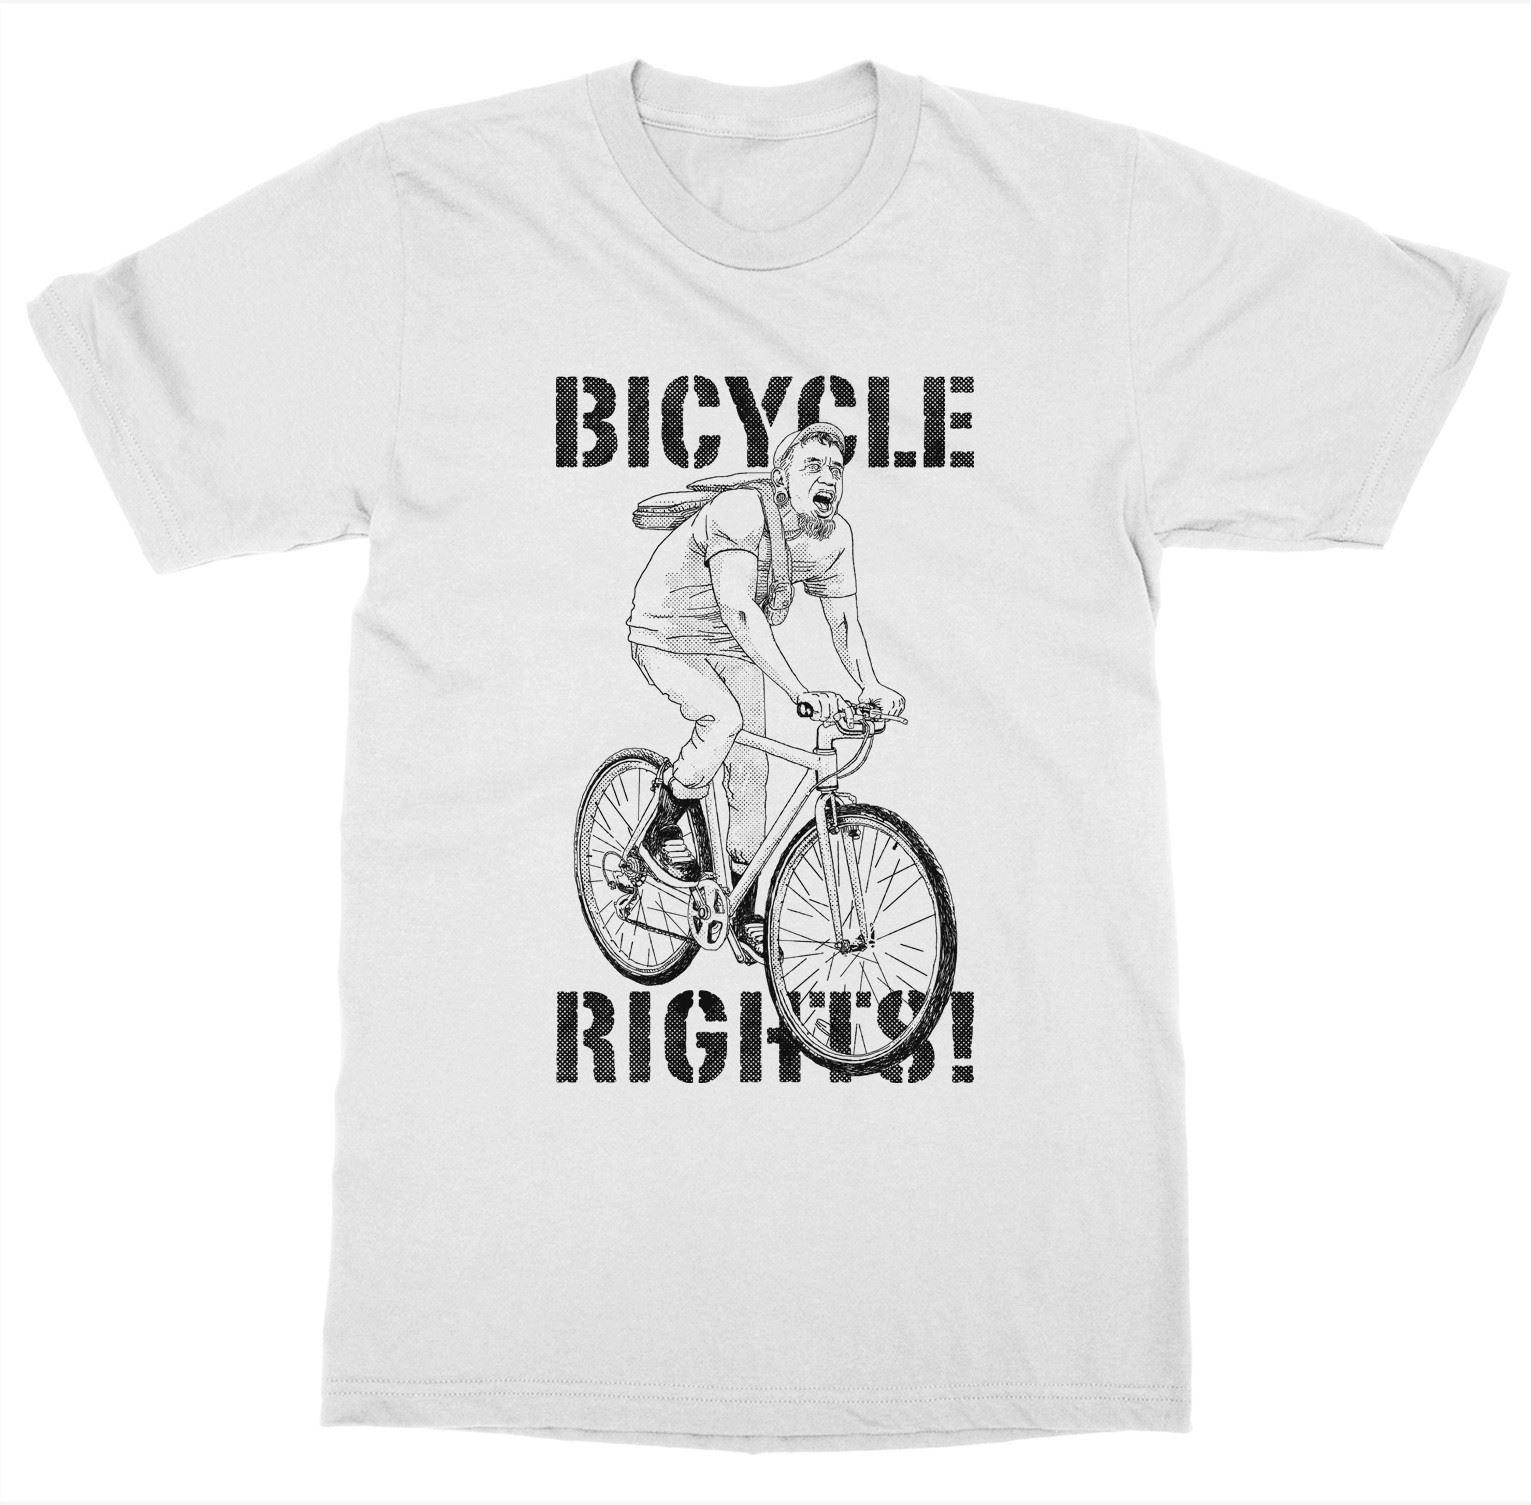 Bicycle Rights T-Shirt Bike Pedal Ride Cycling Spin Gear Wheel Saddle PortlandiaFunny free shipping Unisex Casual Tshirt